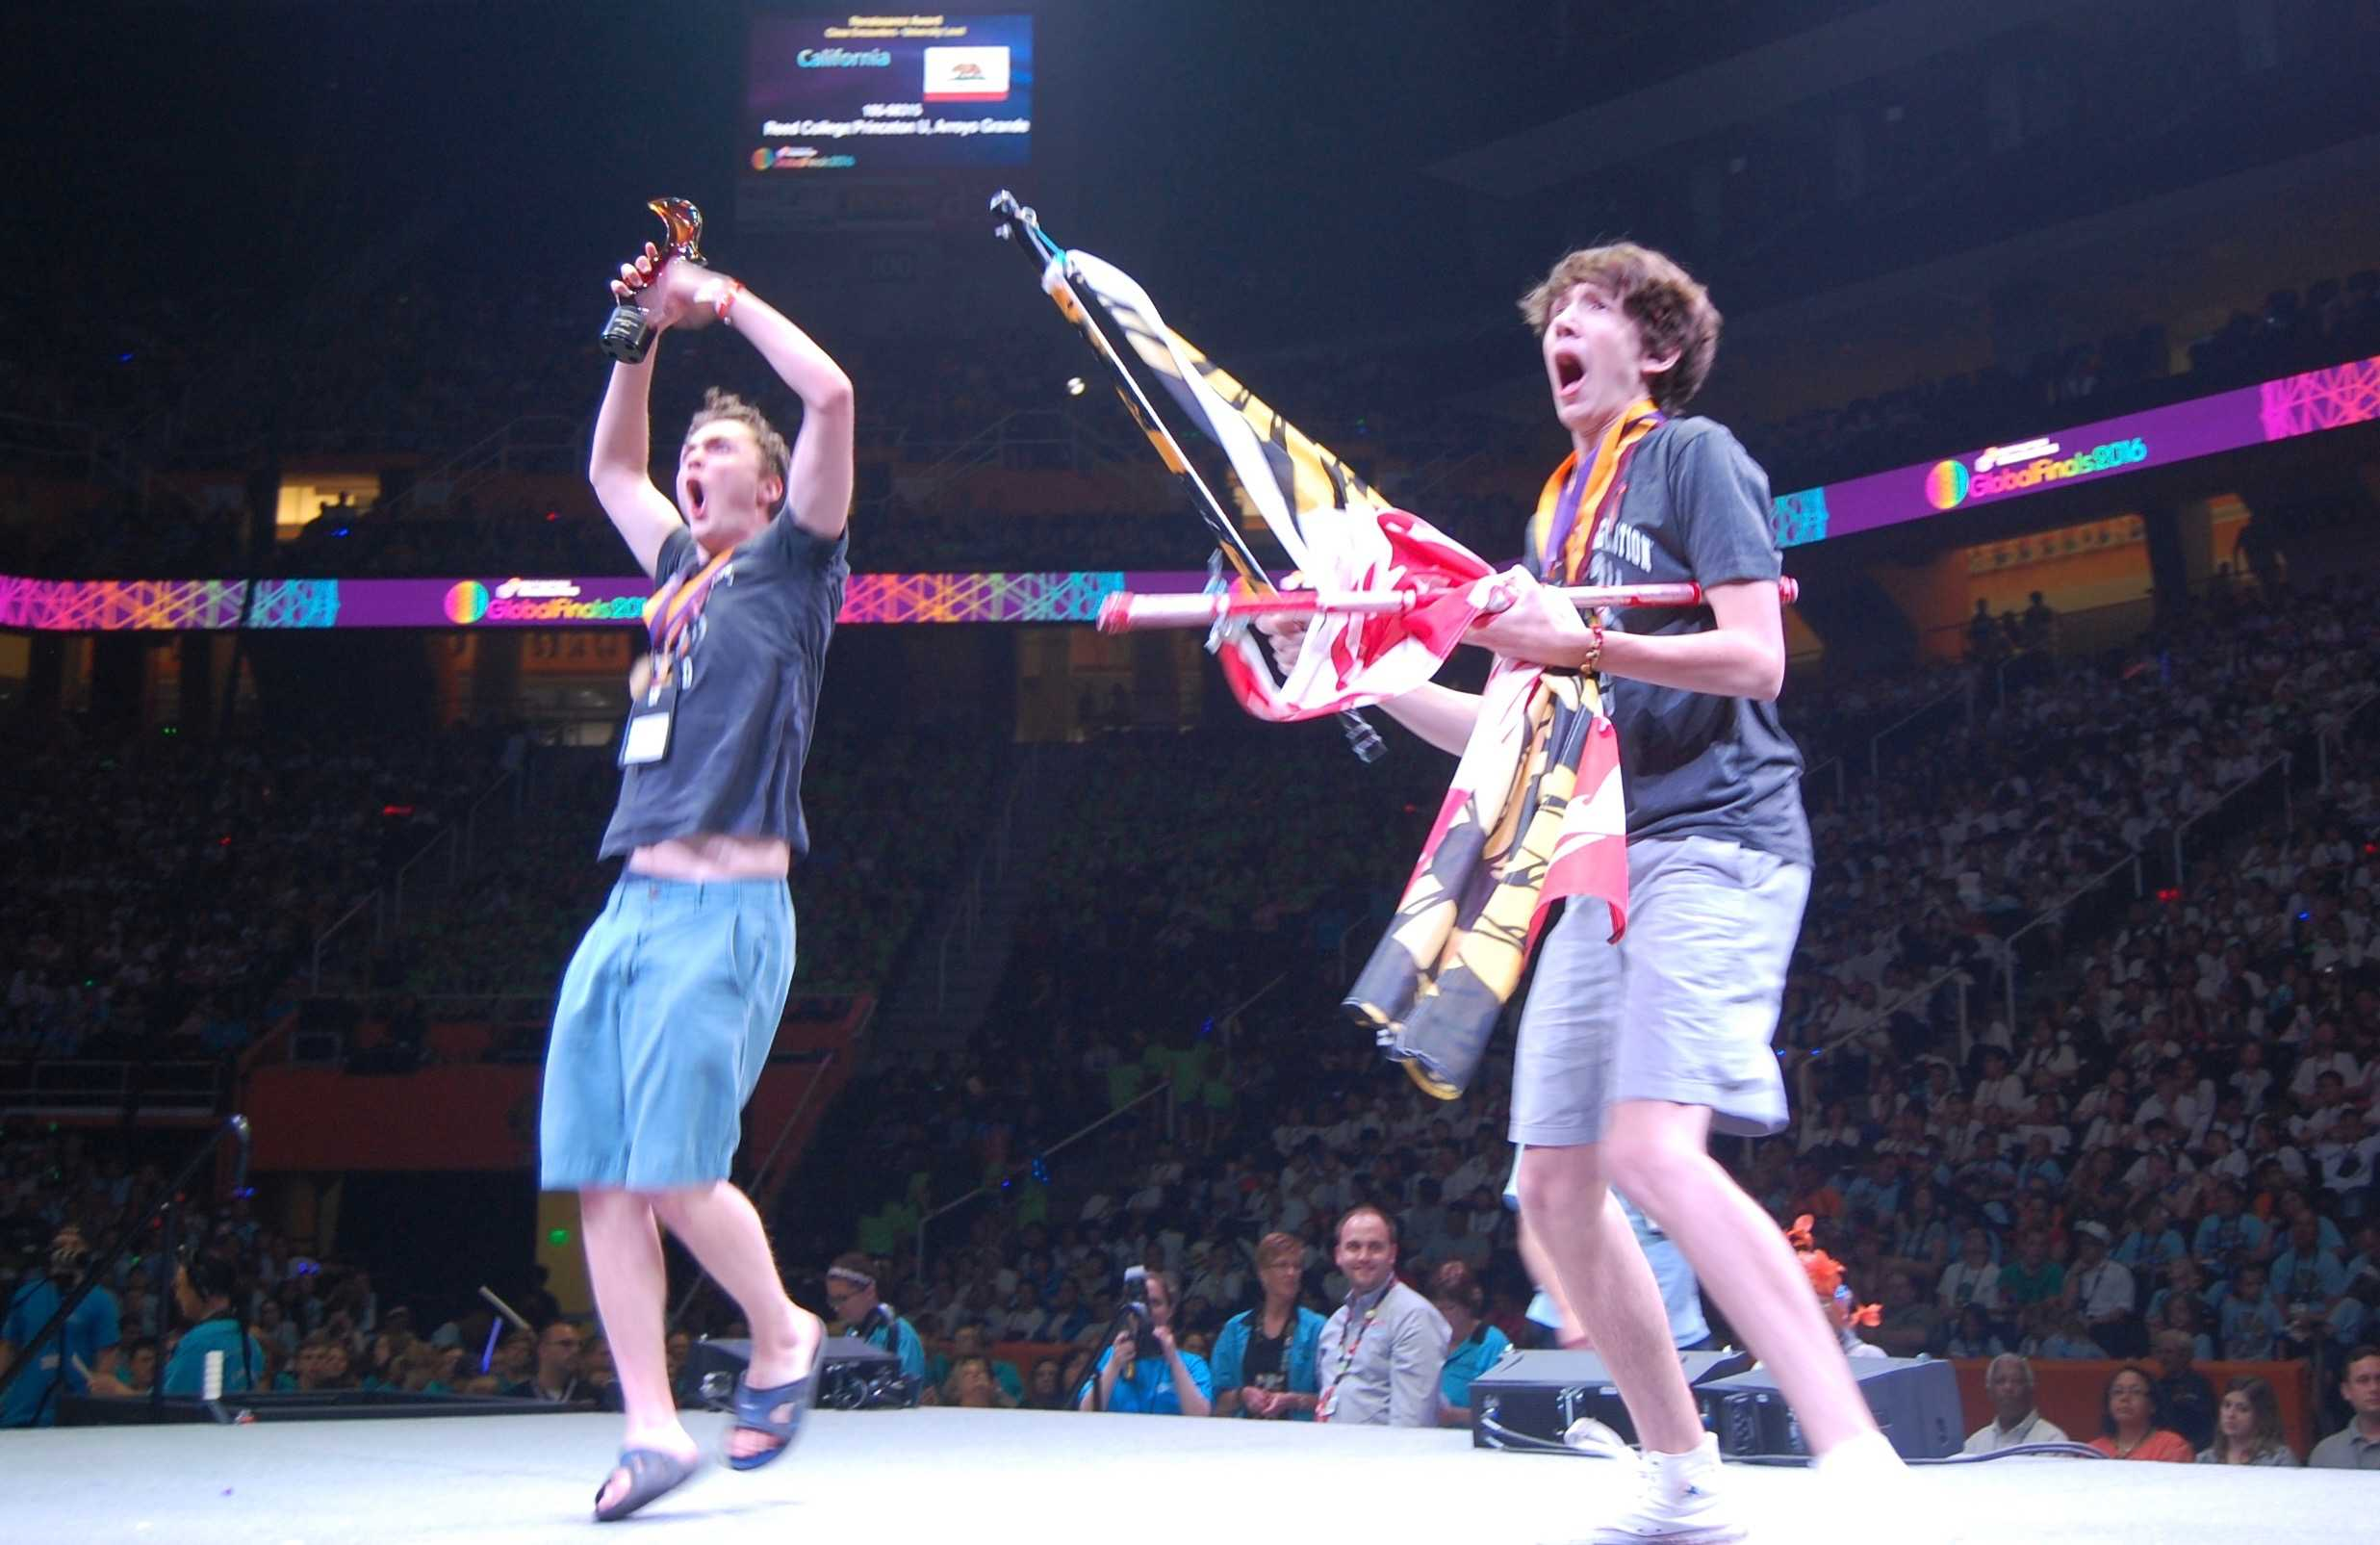 Garret Wiehler and Lincoln Robisch celebrate after their World Championship victory.